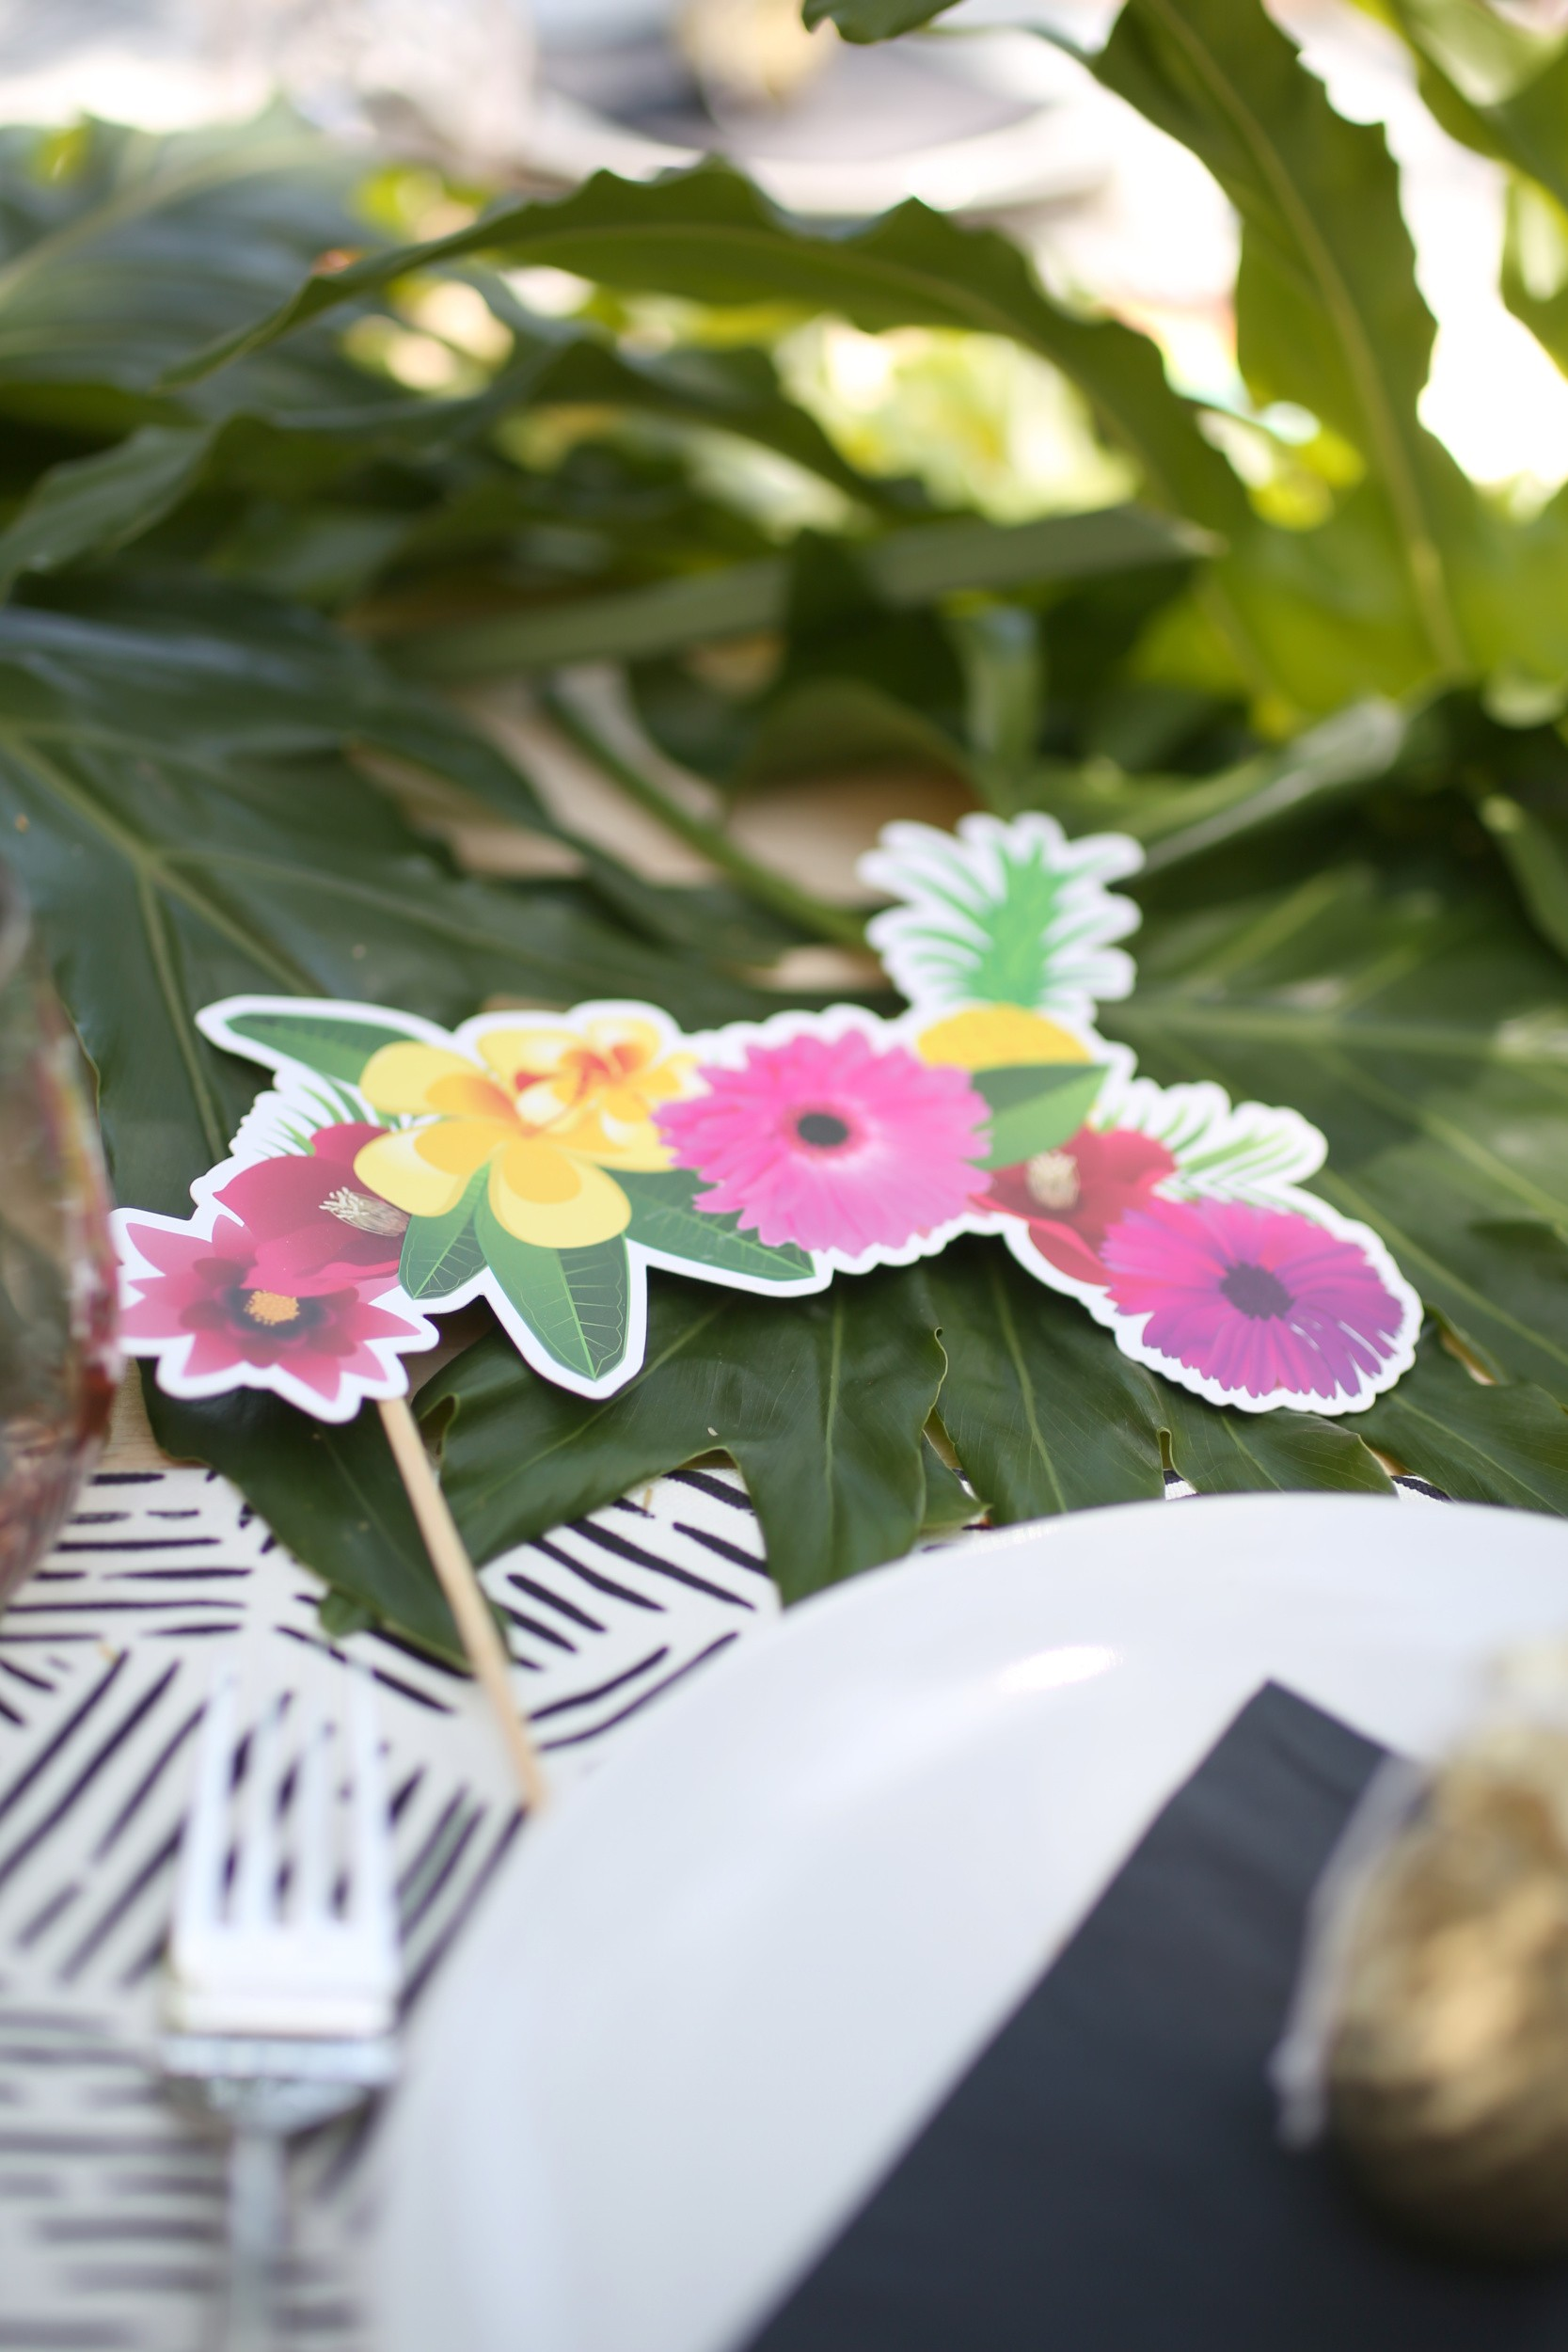 Tropical summer party, BANANA over TROPICANA: Hosting a Tropical Summer Party.